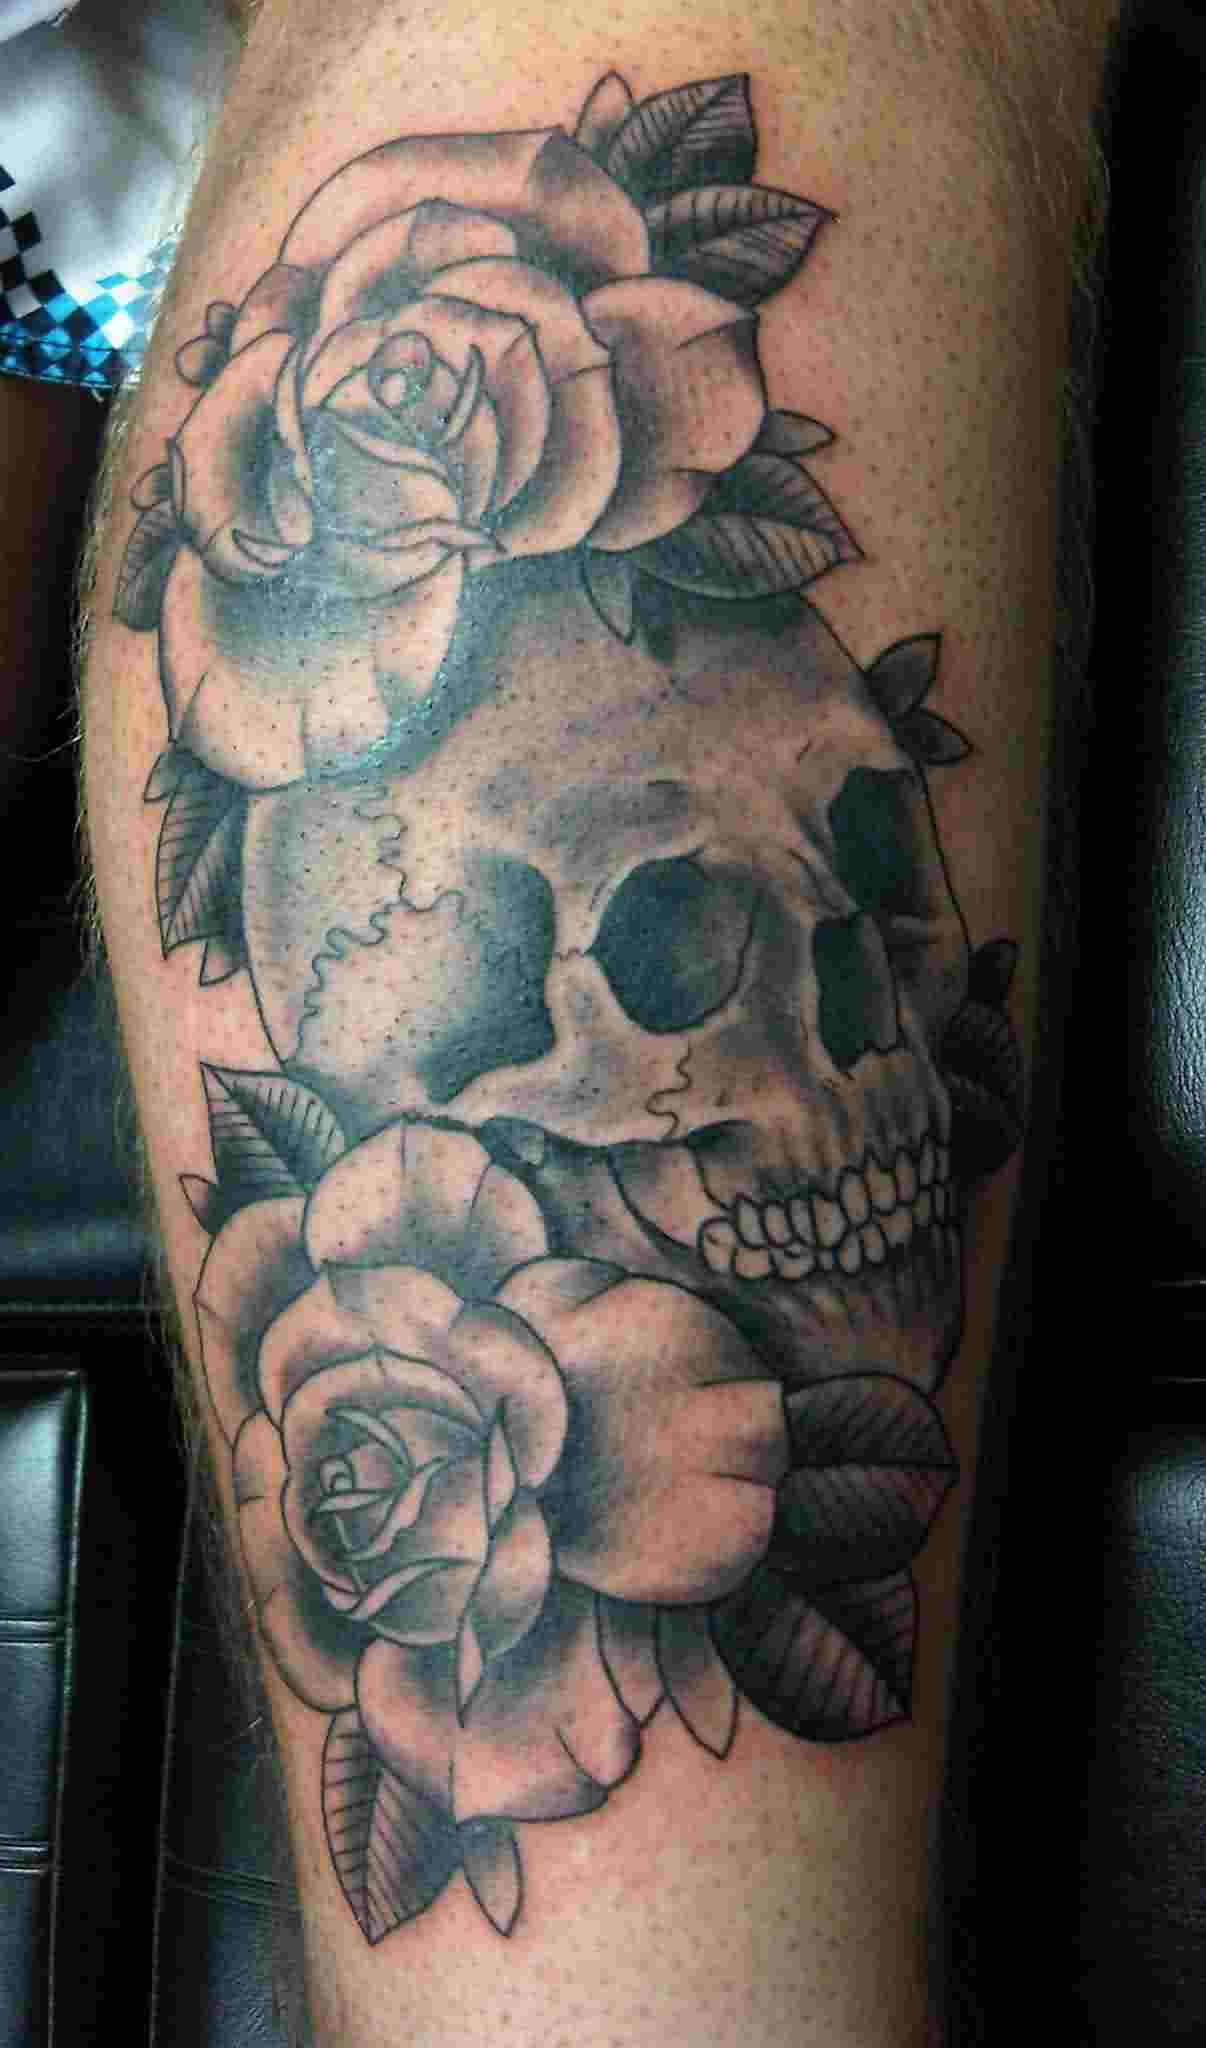 Couple Of Rose And Cracked Skull Tattoos